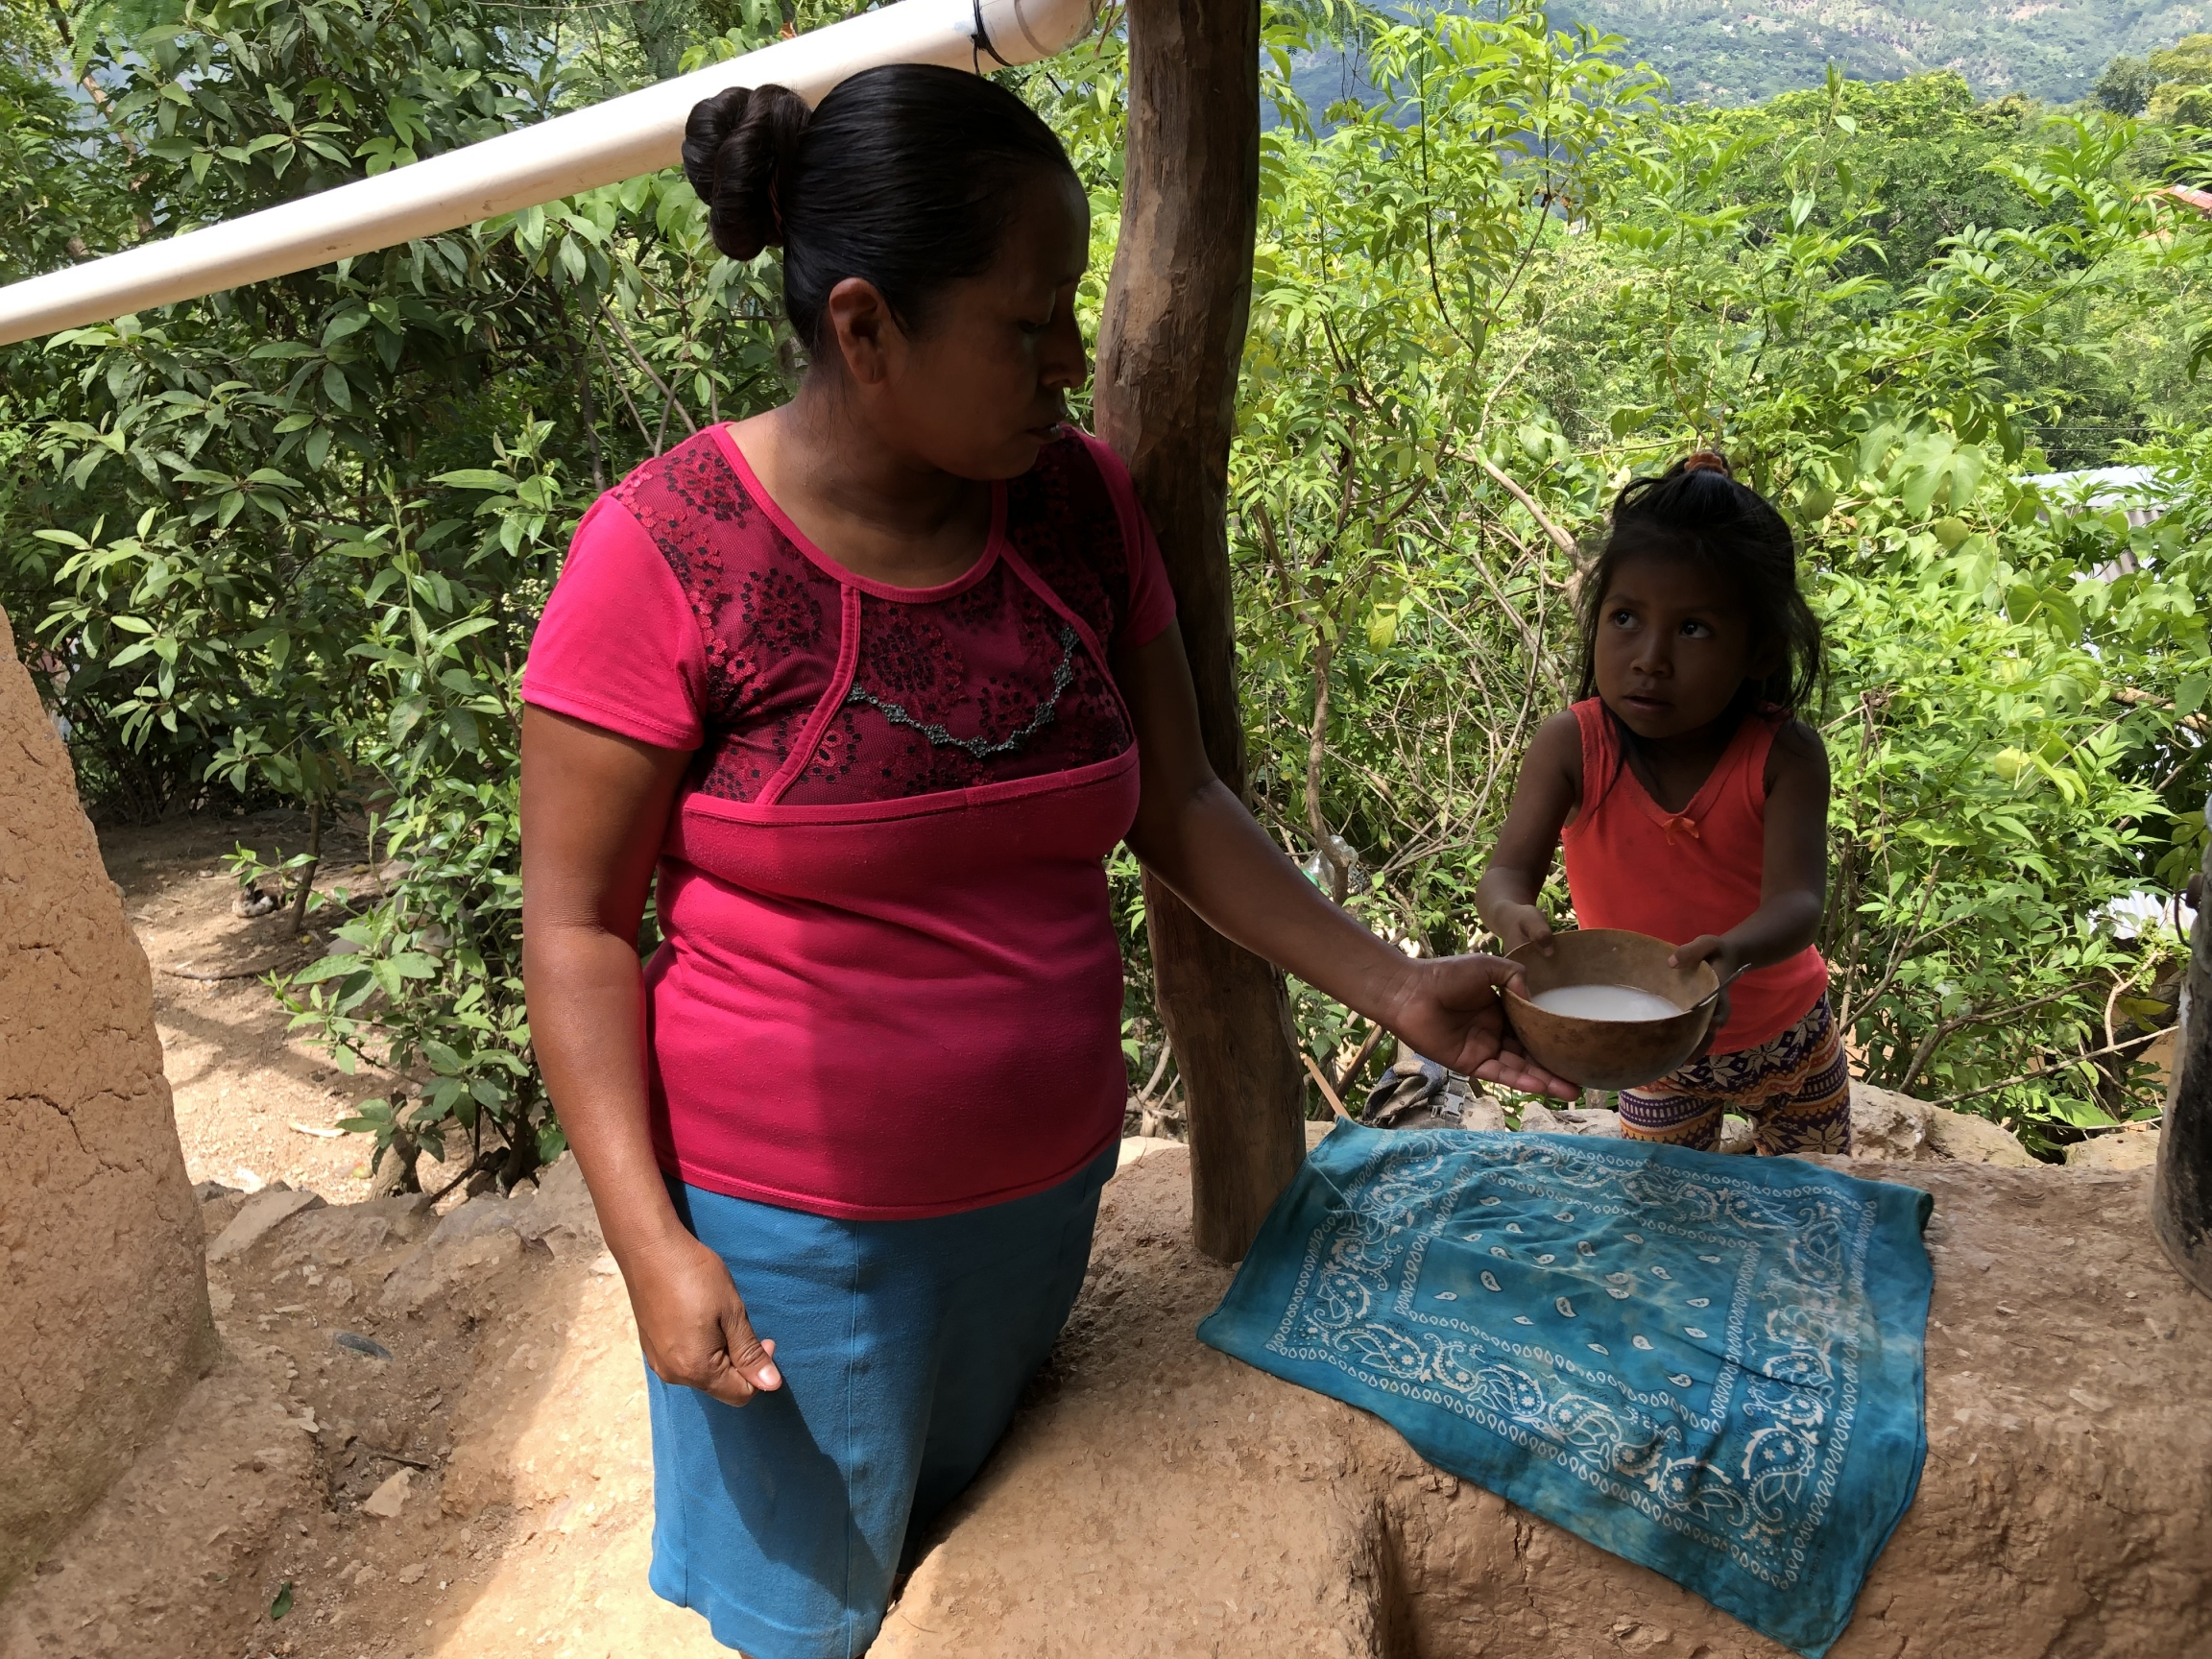 A Guatemalan mother prepares broth for her daughter, whom doctors say is malnourished.